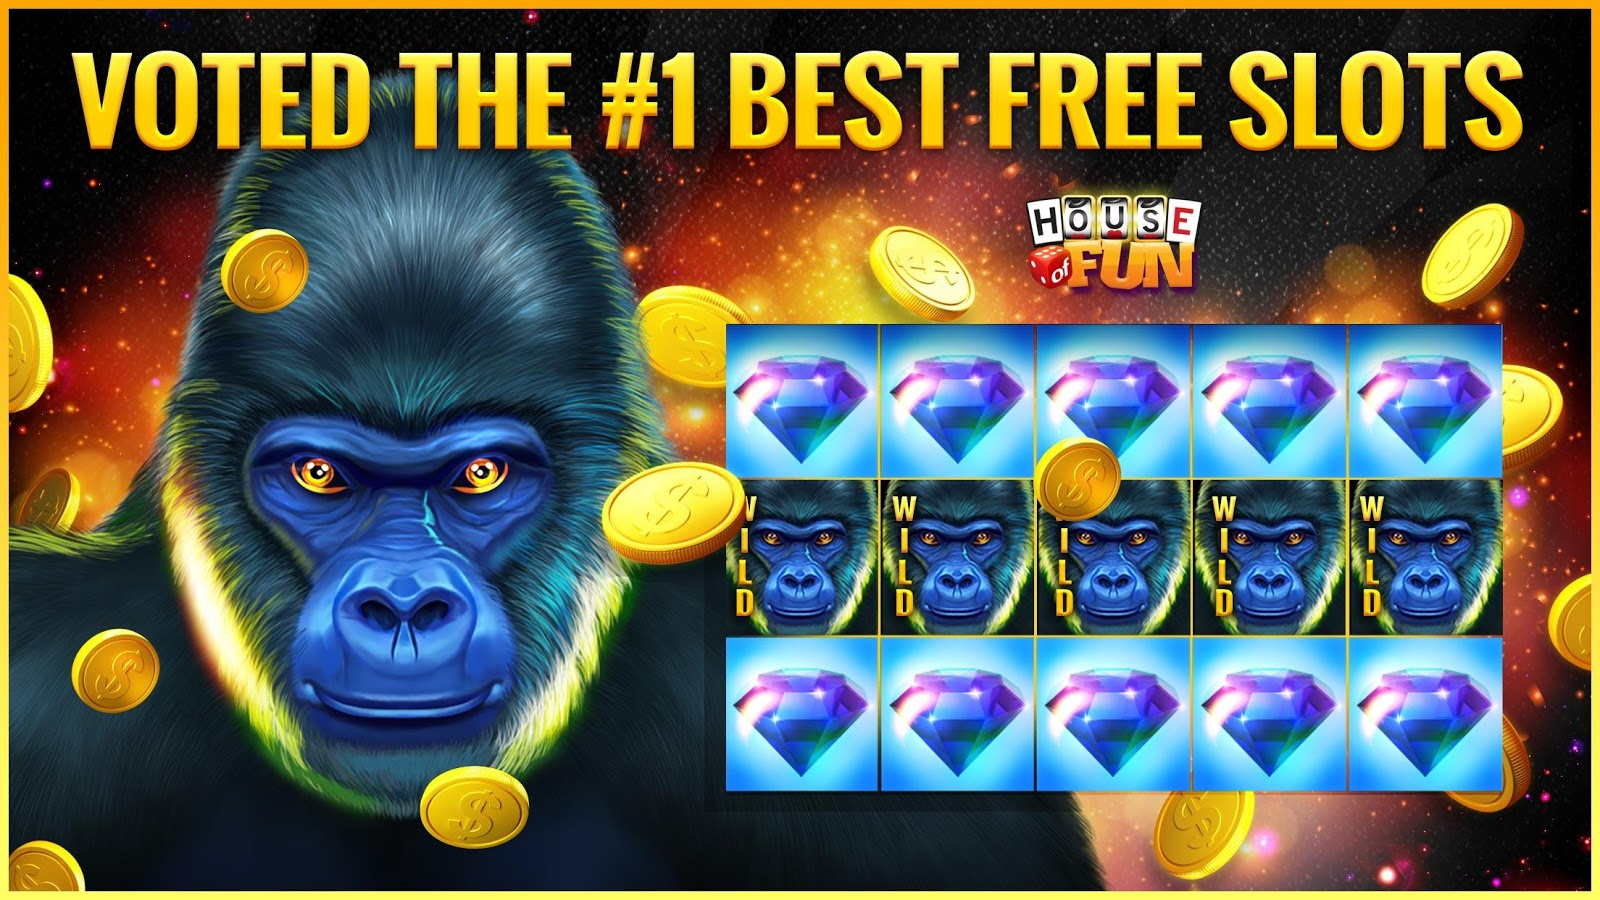 more free slots for fun